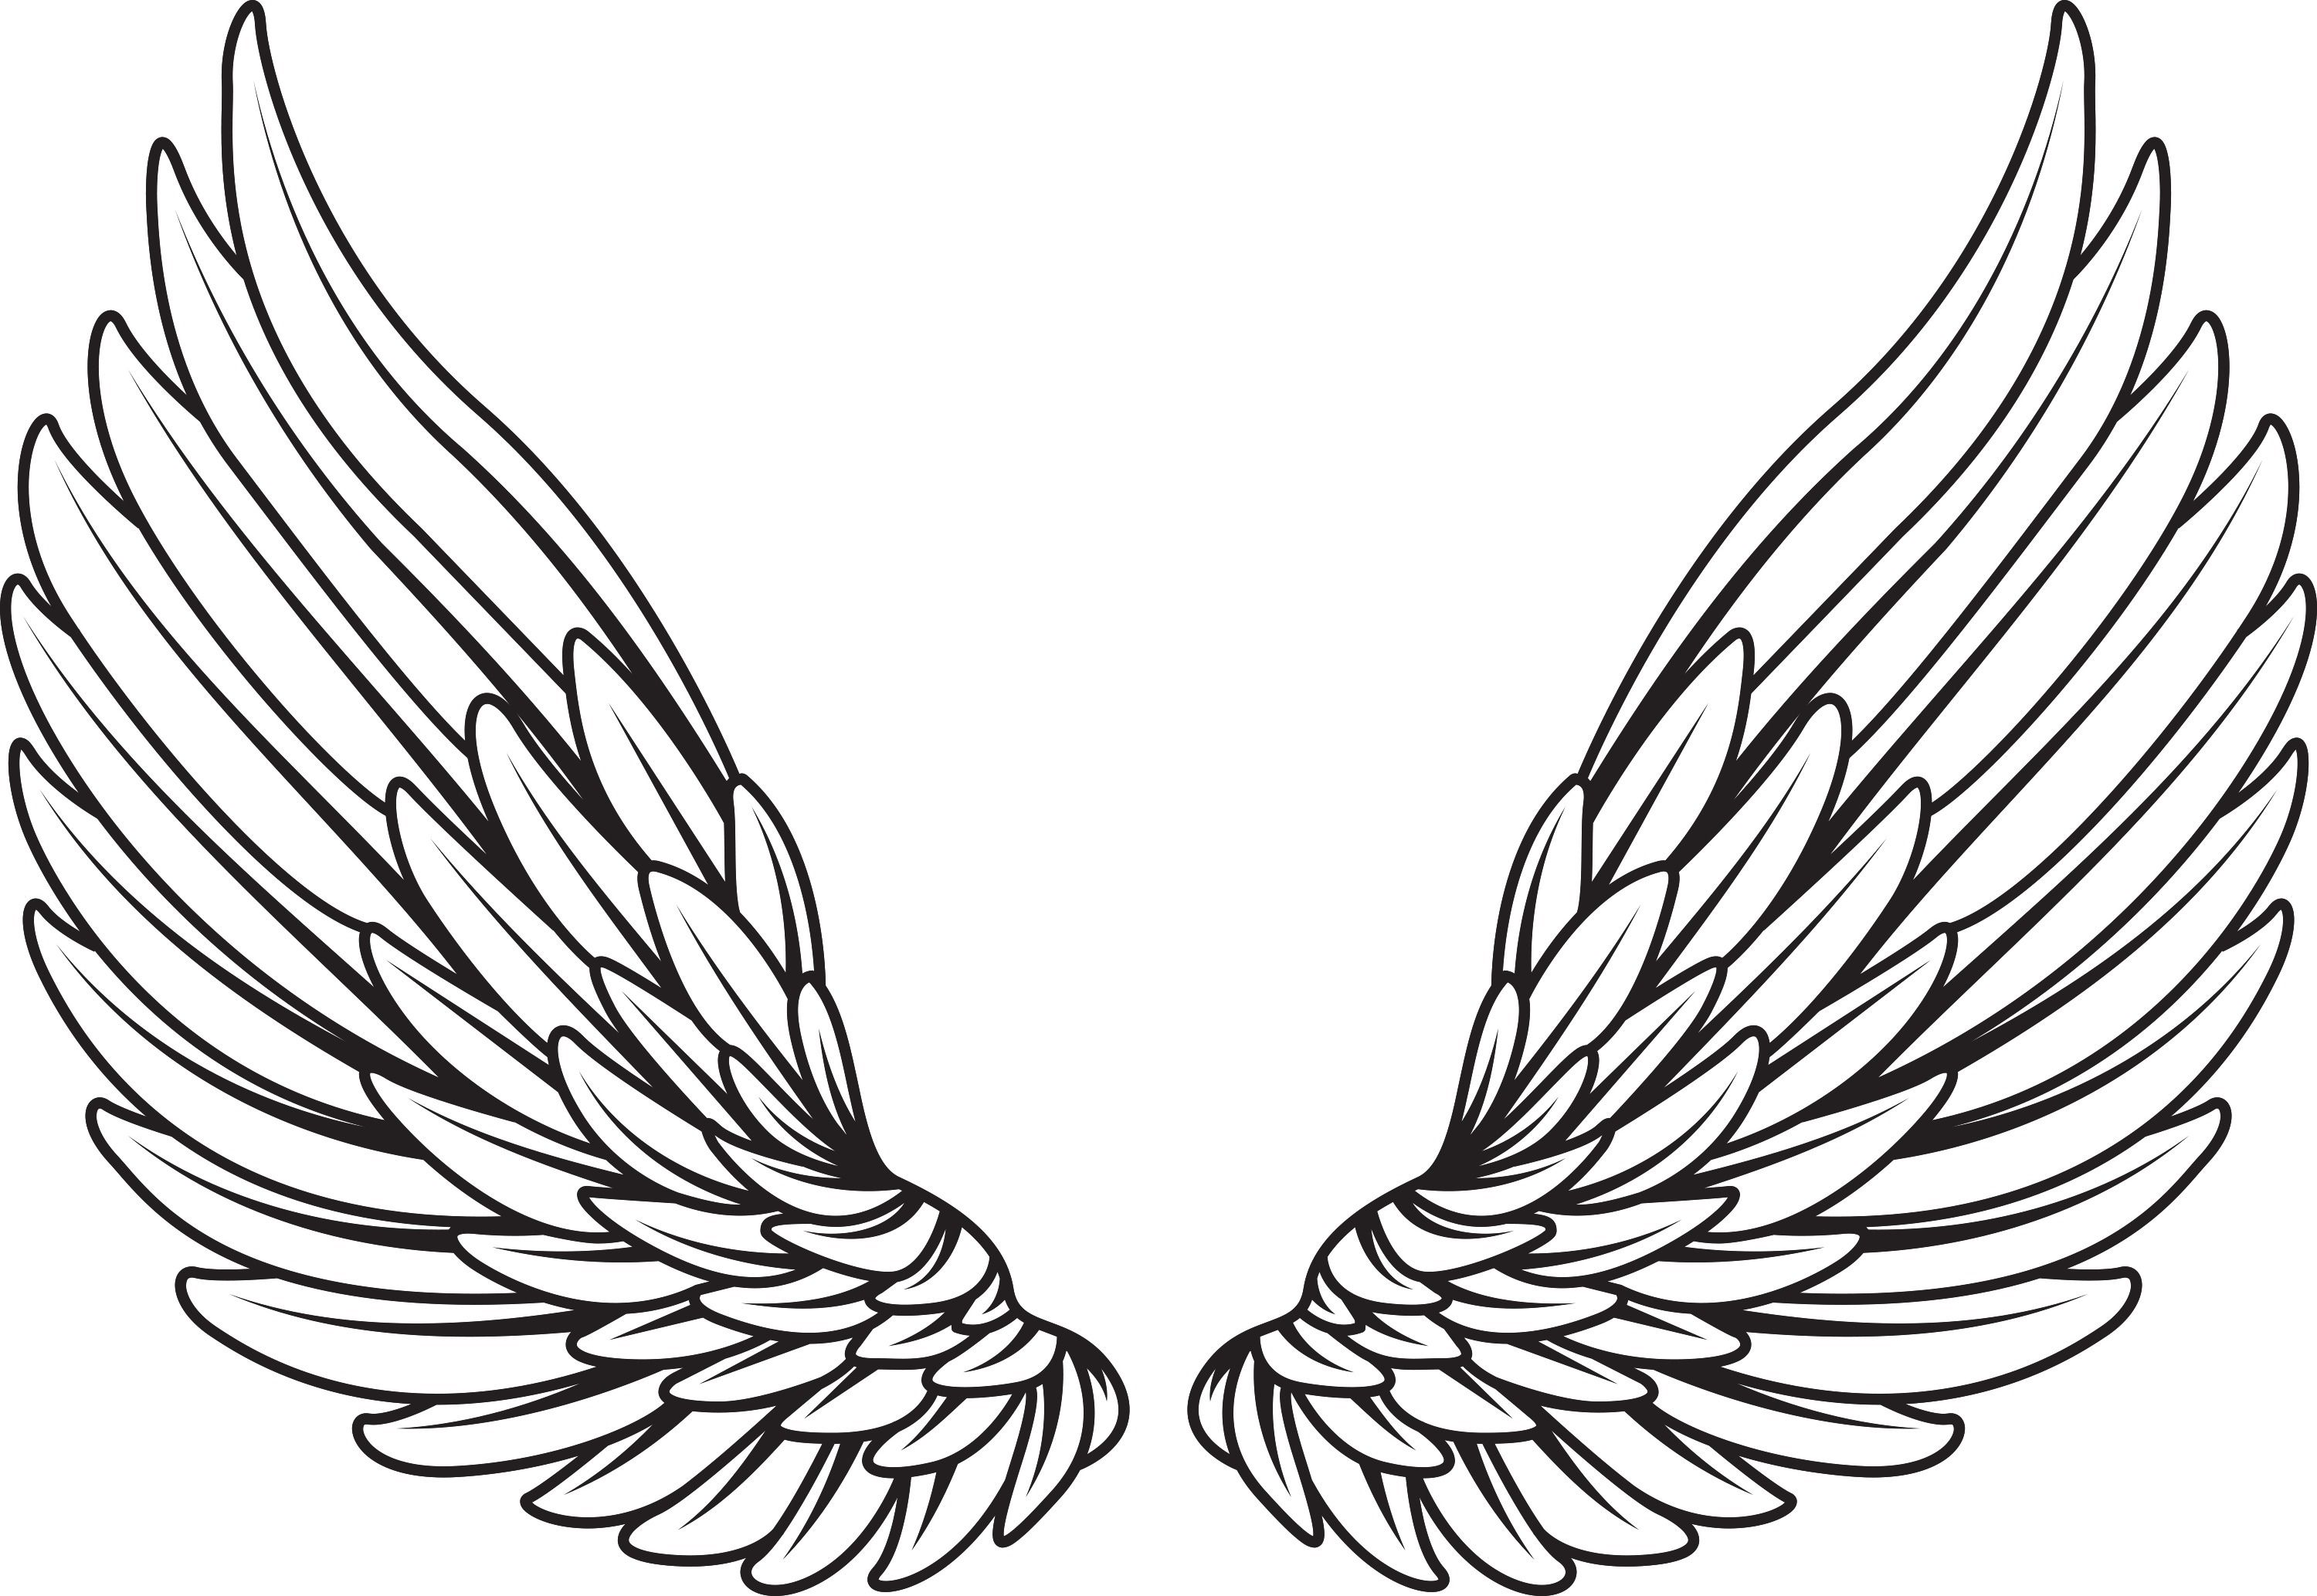 Awesome vector angel wings images